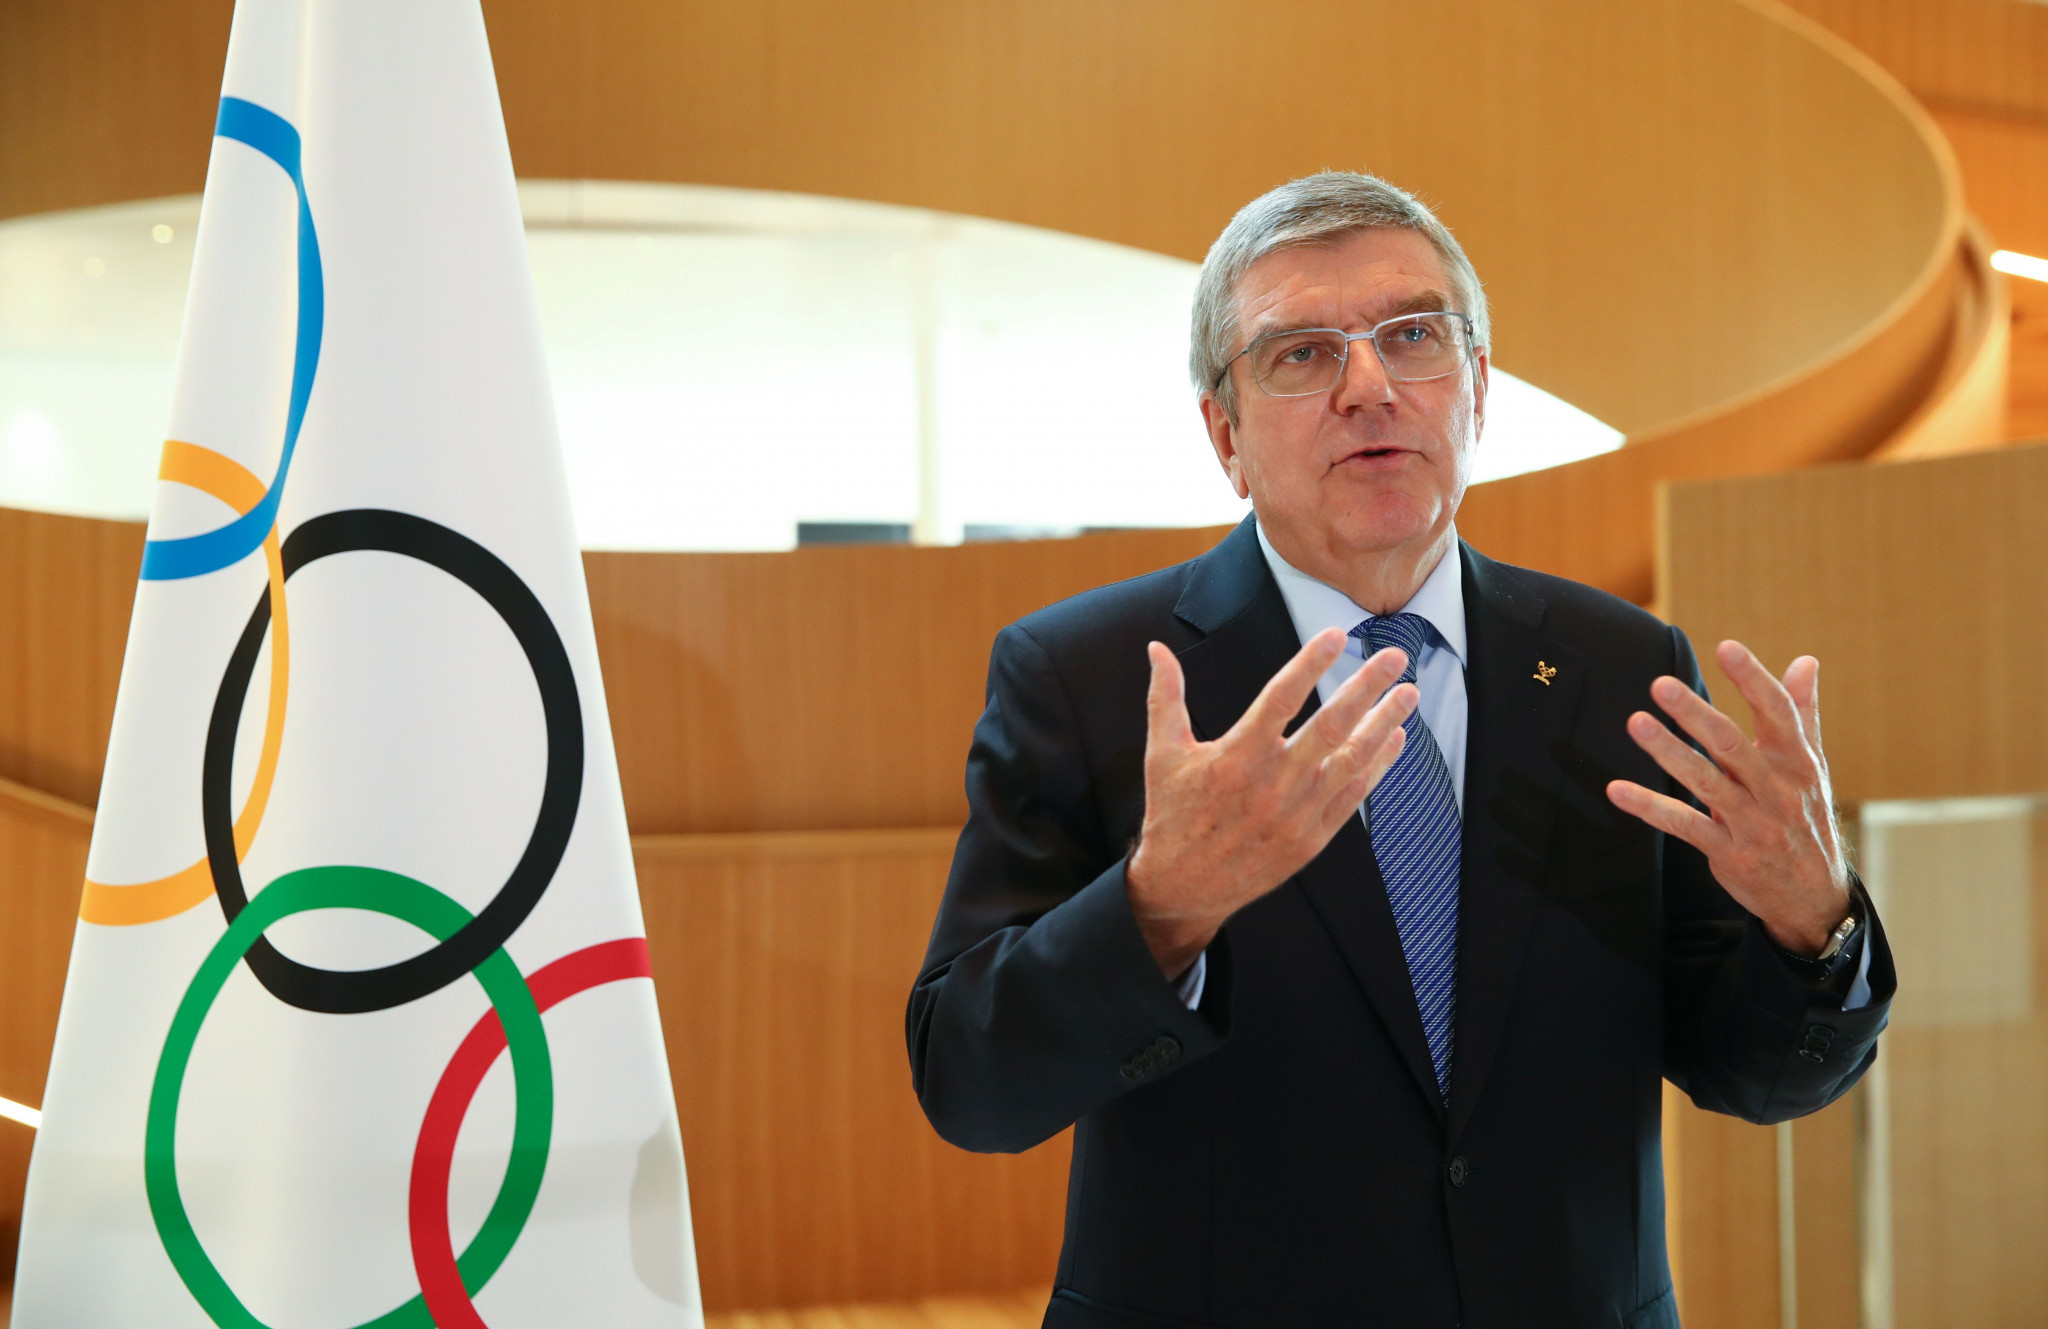 IOC President Thomas Bach was among those to welcome the new Prime Minister ©Getty Images